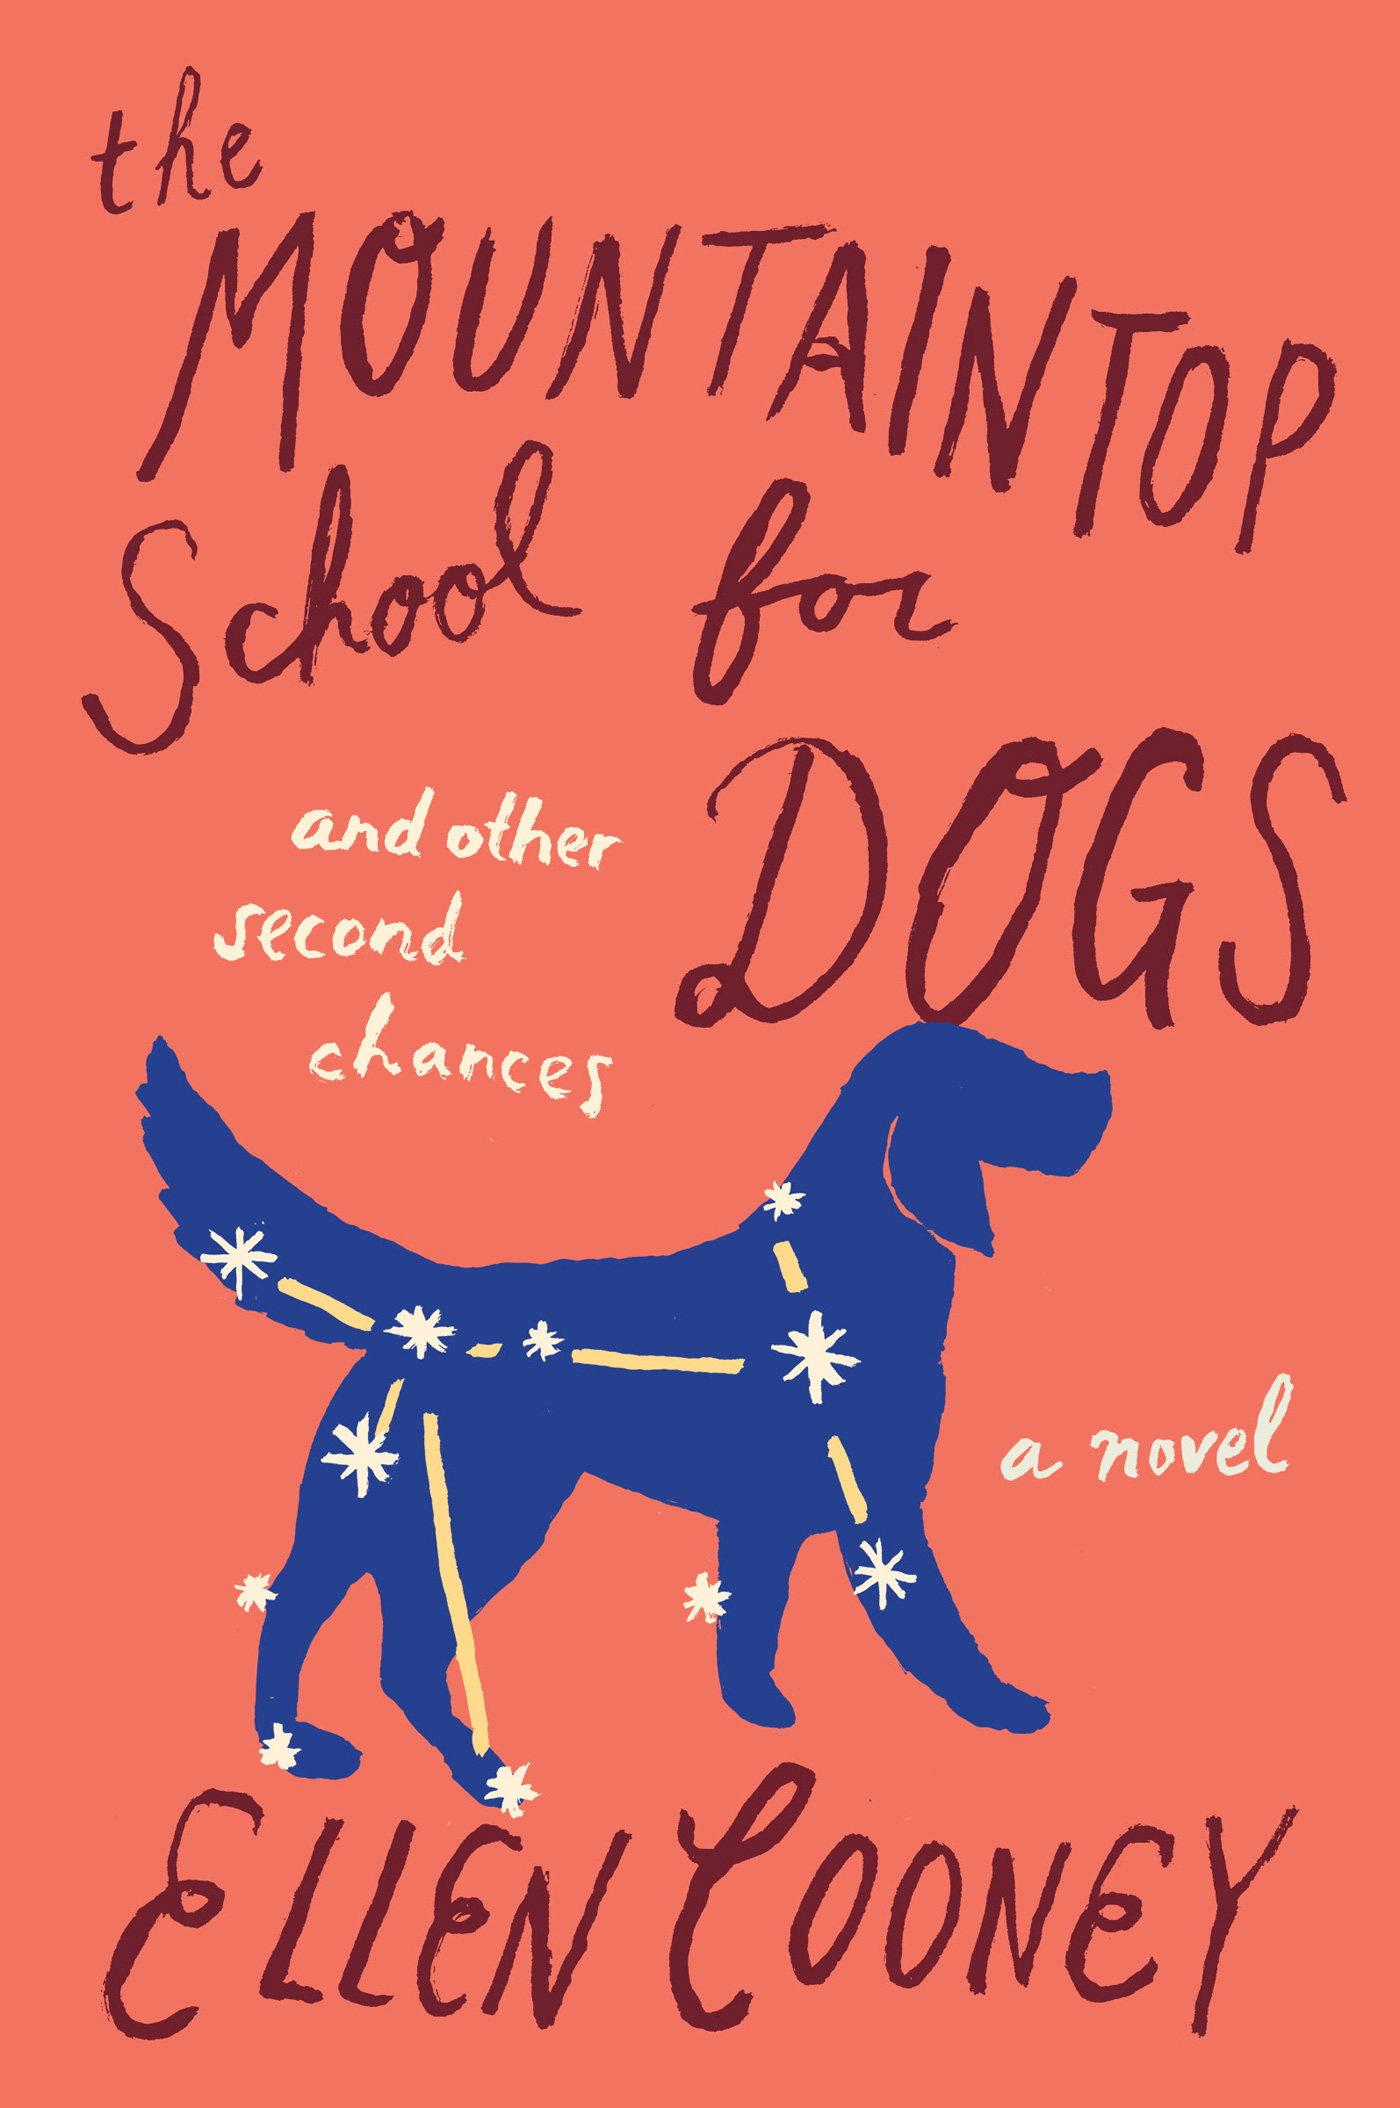 The Mountaintop School for Dogs and Other Second Chances-9780544237094